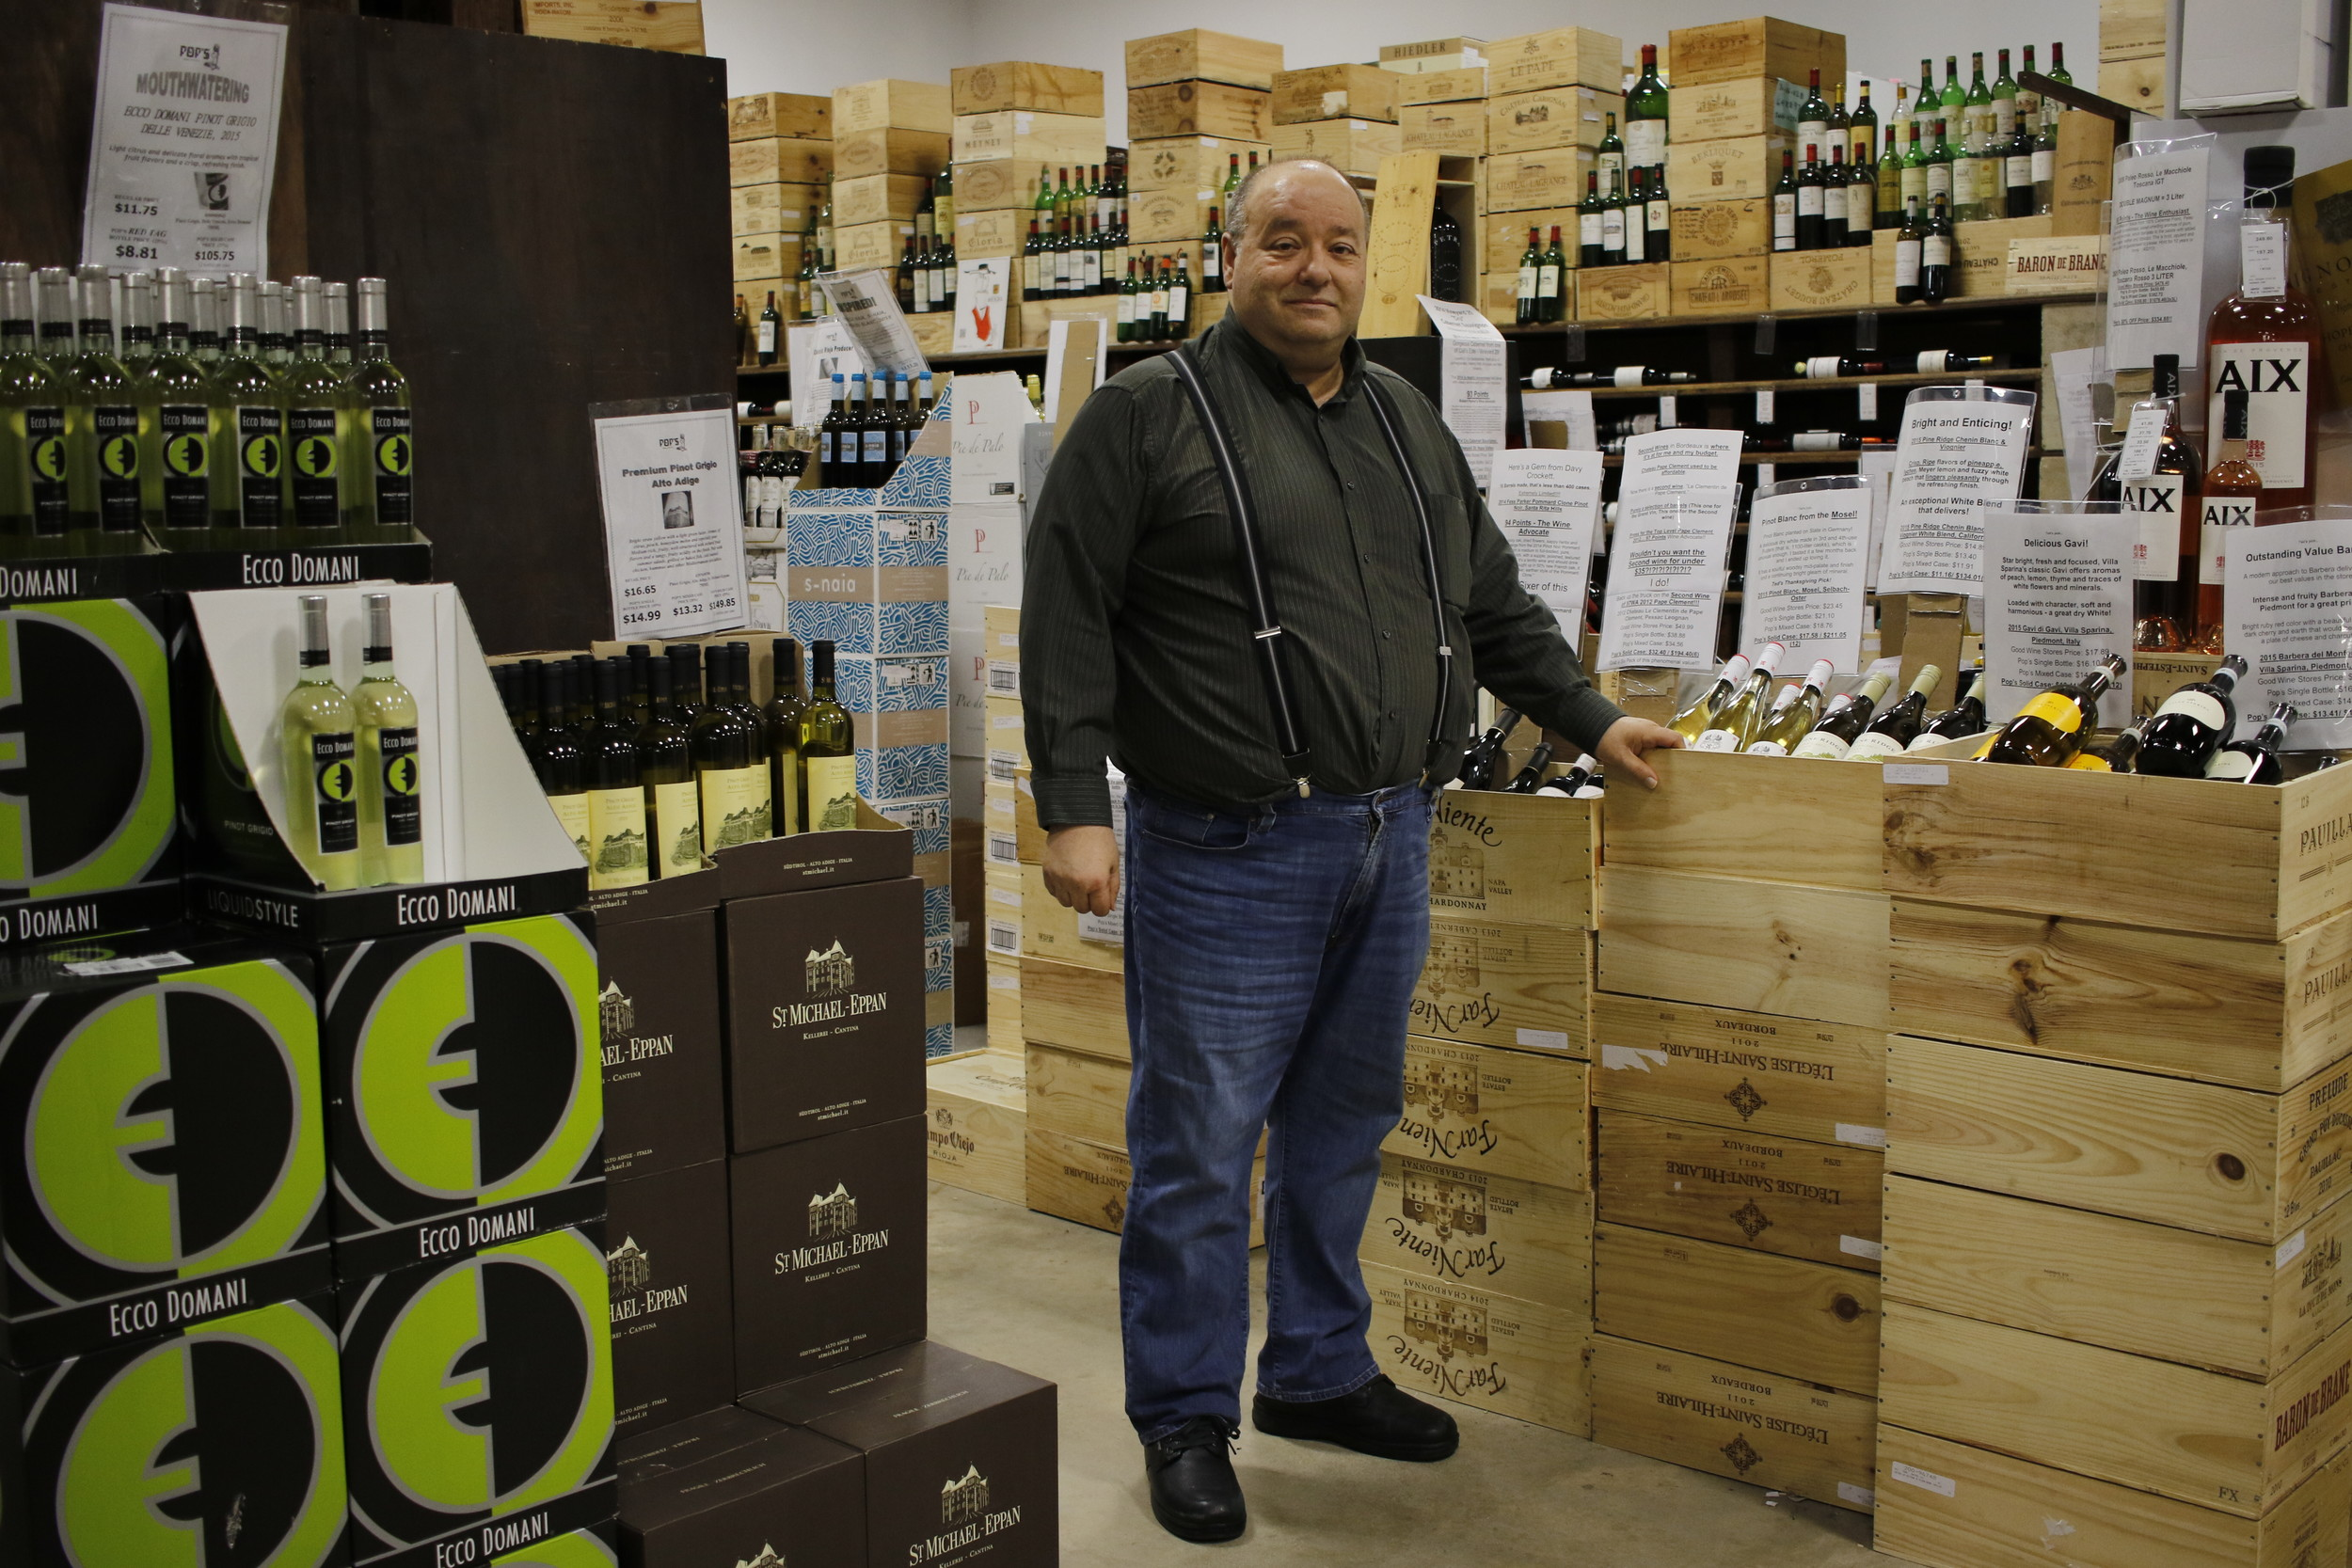 Nick Poulos, owner of Pop's Wine and Spirits, took over the business from his father in 1976.